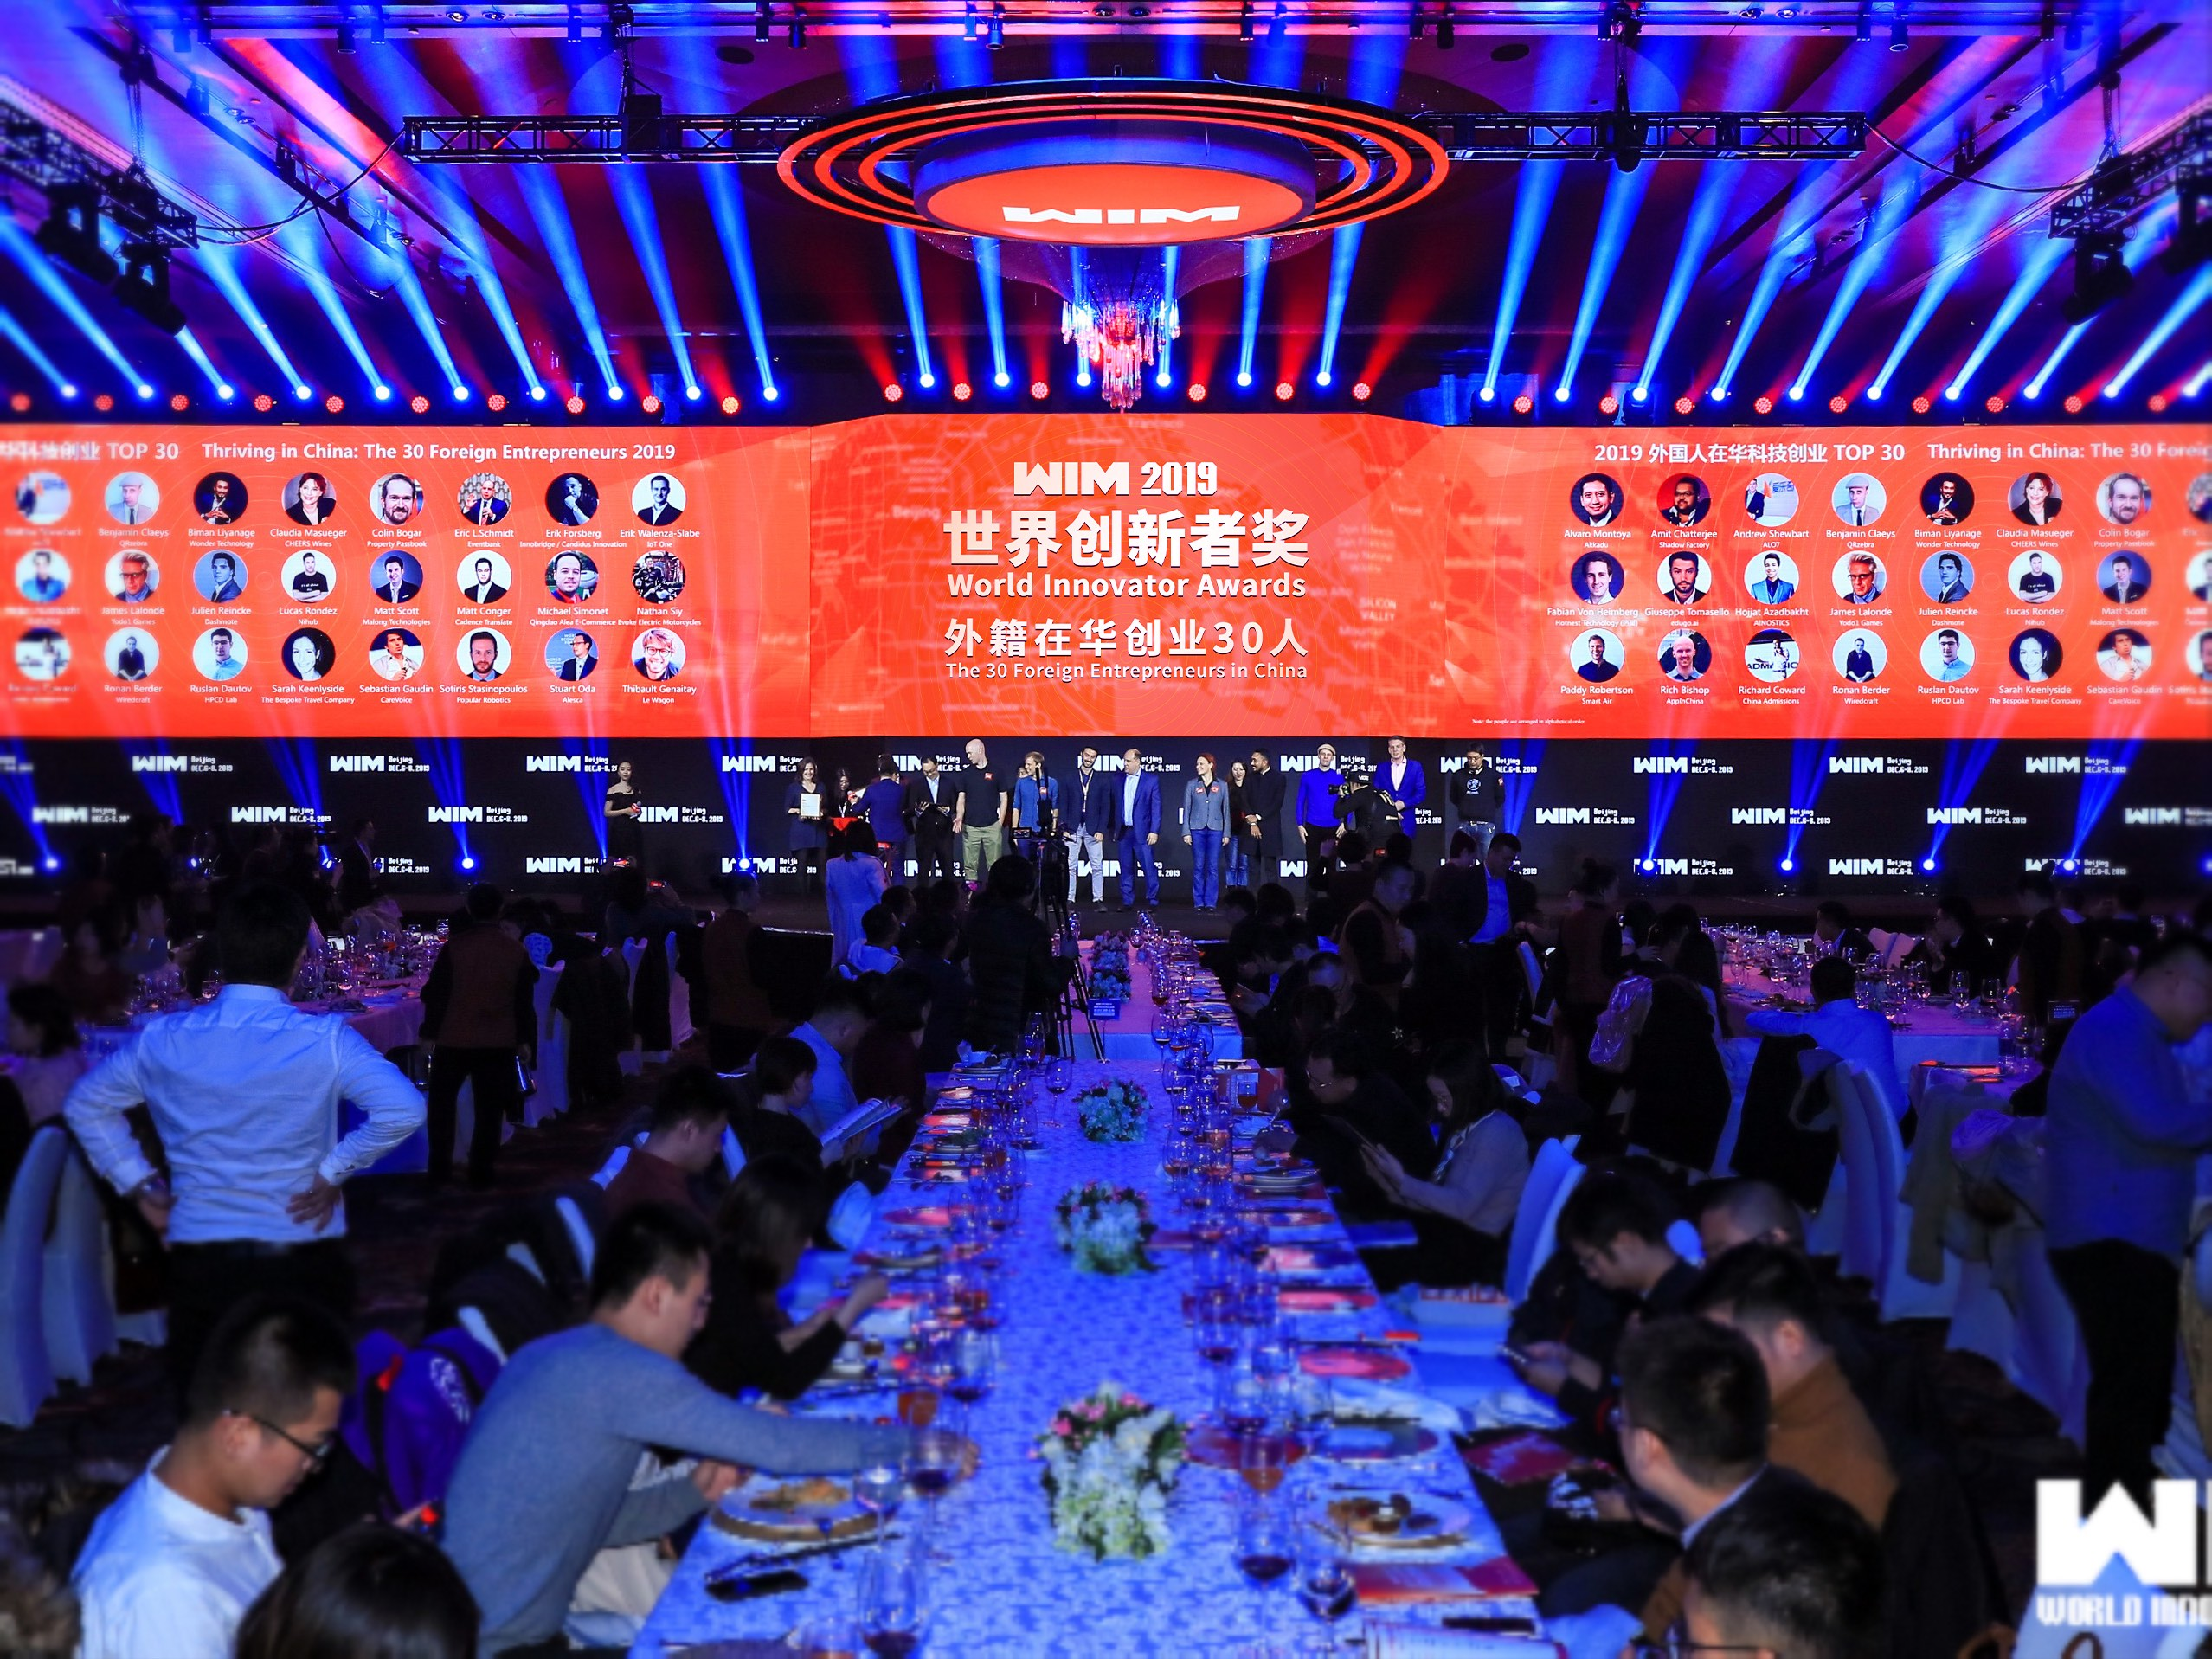 EqualOcean Presents: The 30 Foreign Entrepreneurs in China 2019